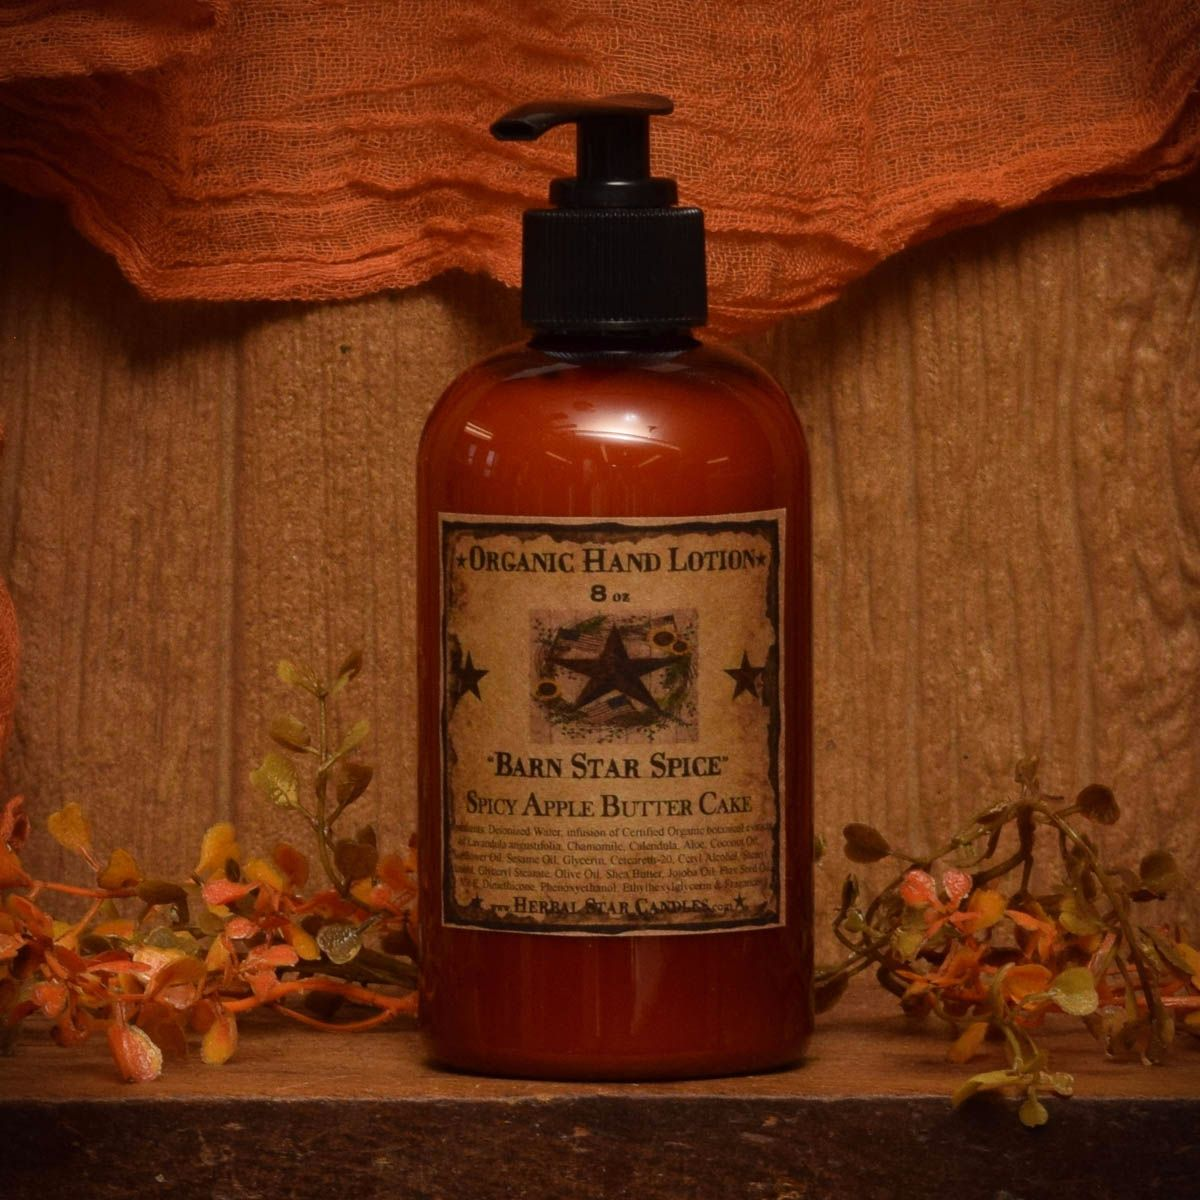 Barn Star Spice Organic Hand Lotion